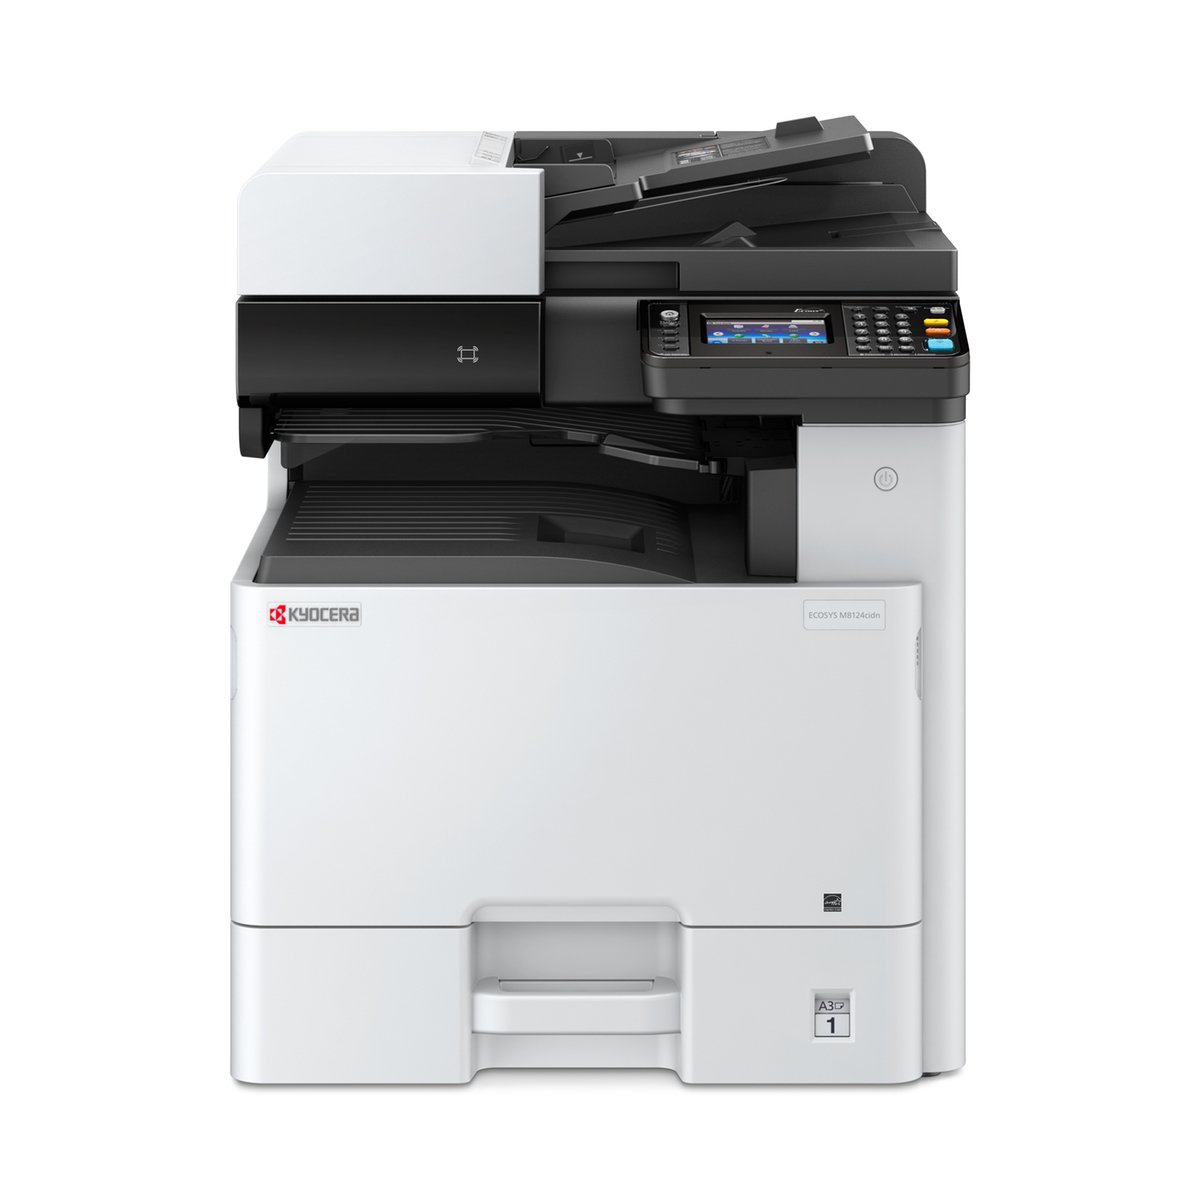 Kyocera Copiers:  The Kyocera ECOSYS M8124cidn Copier